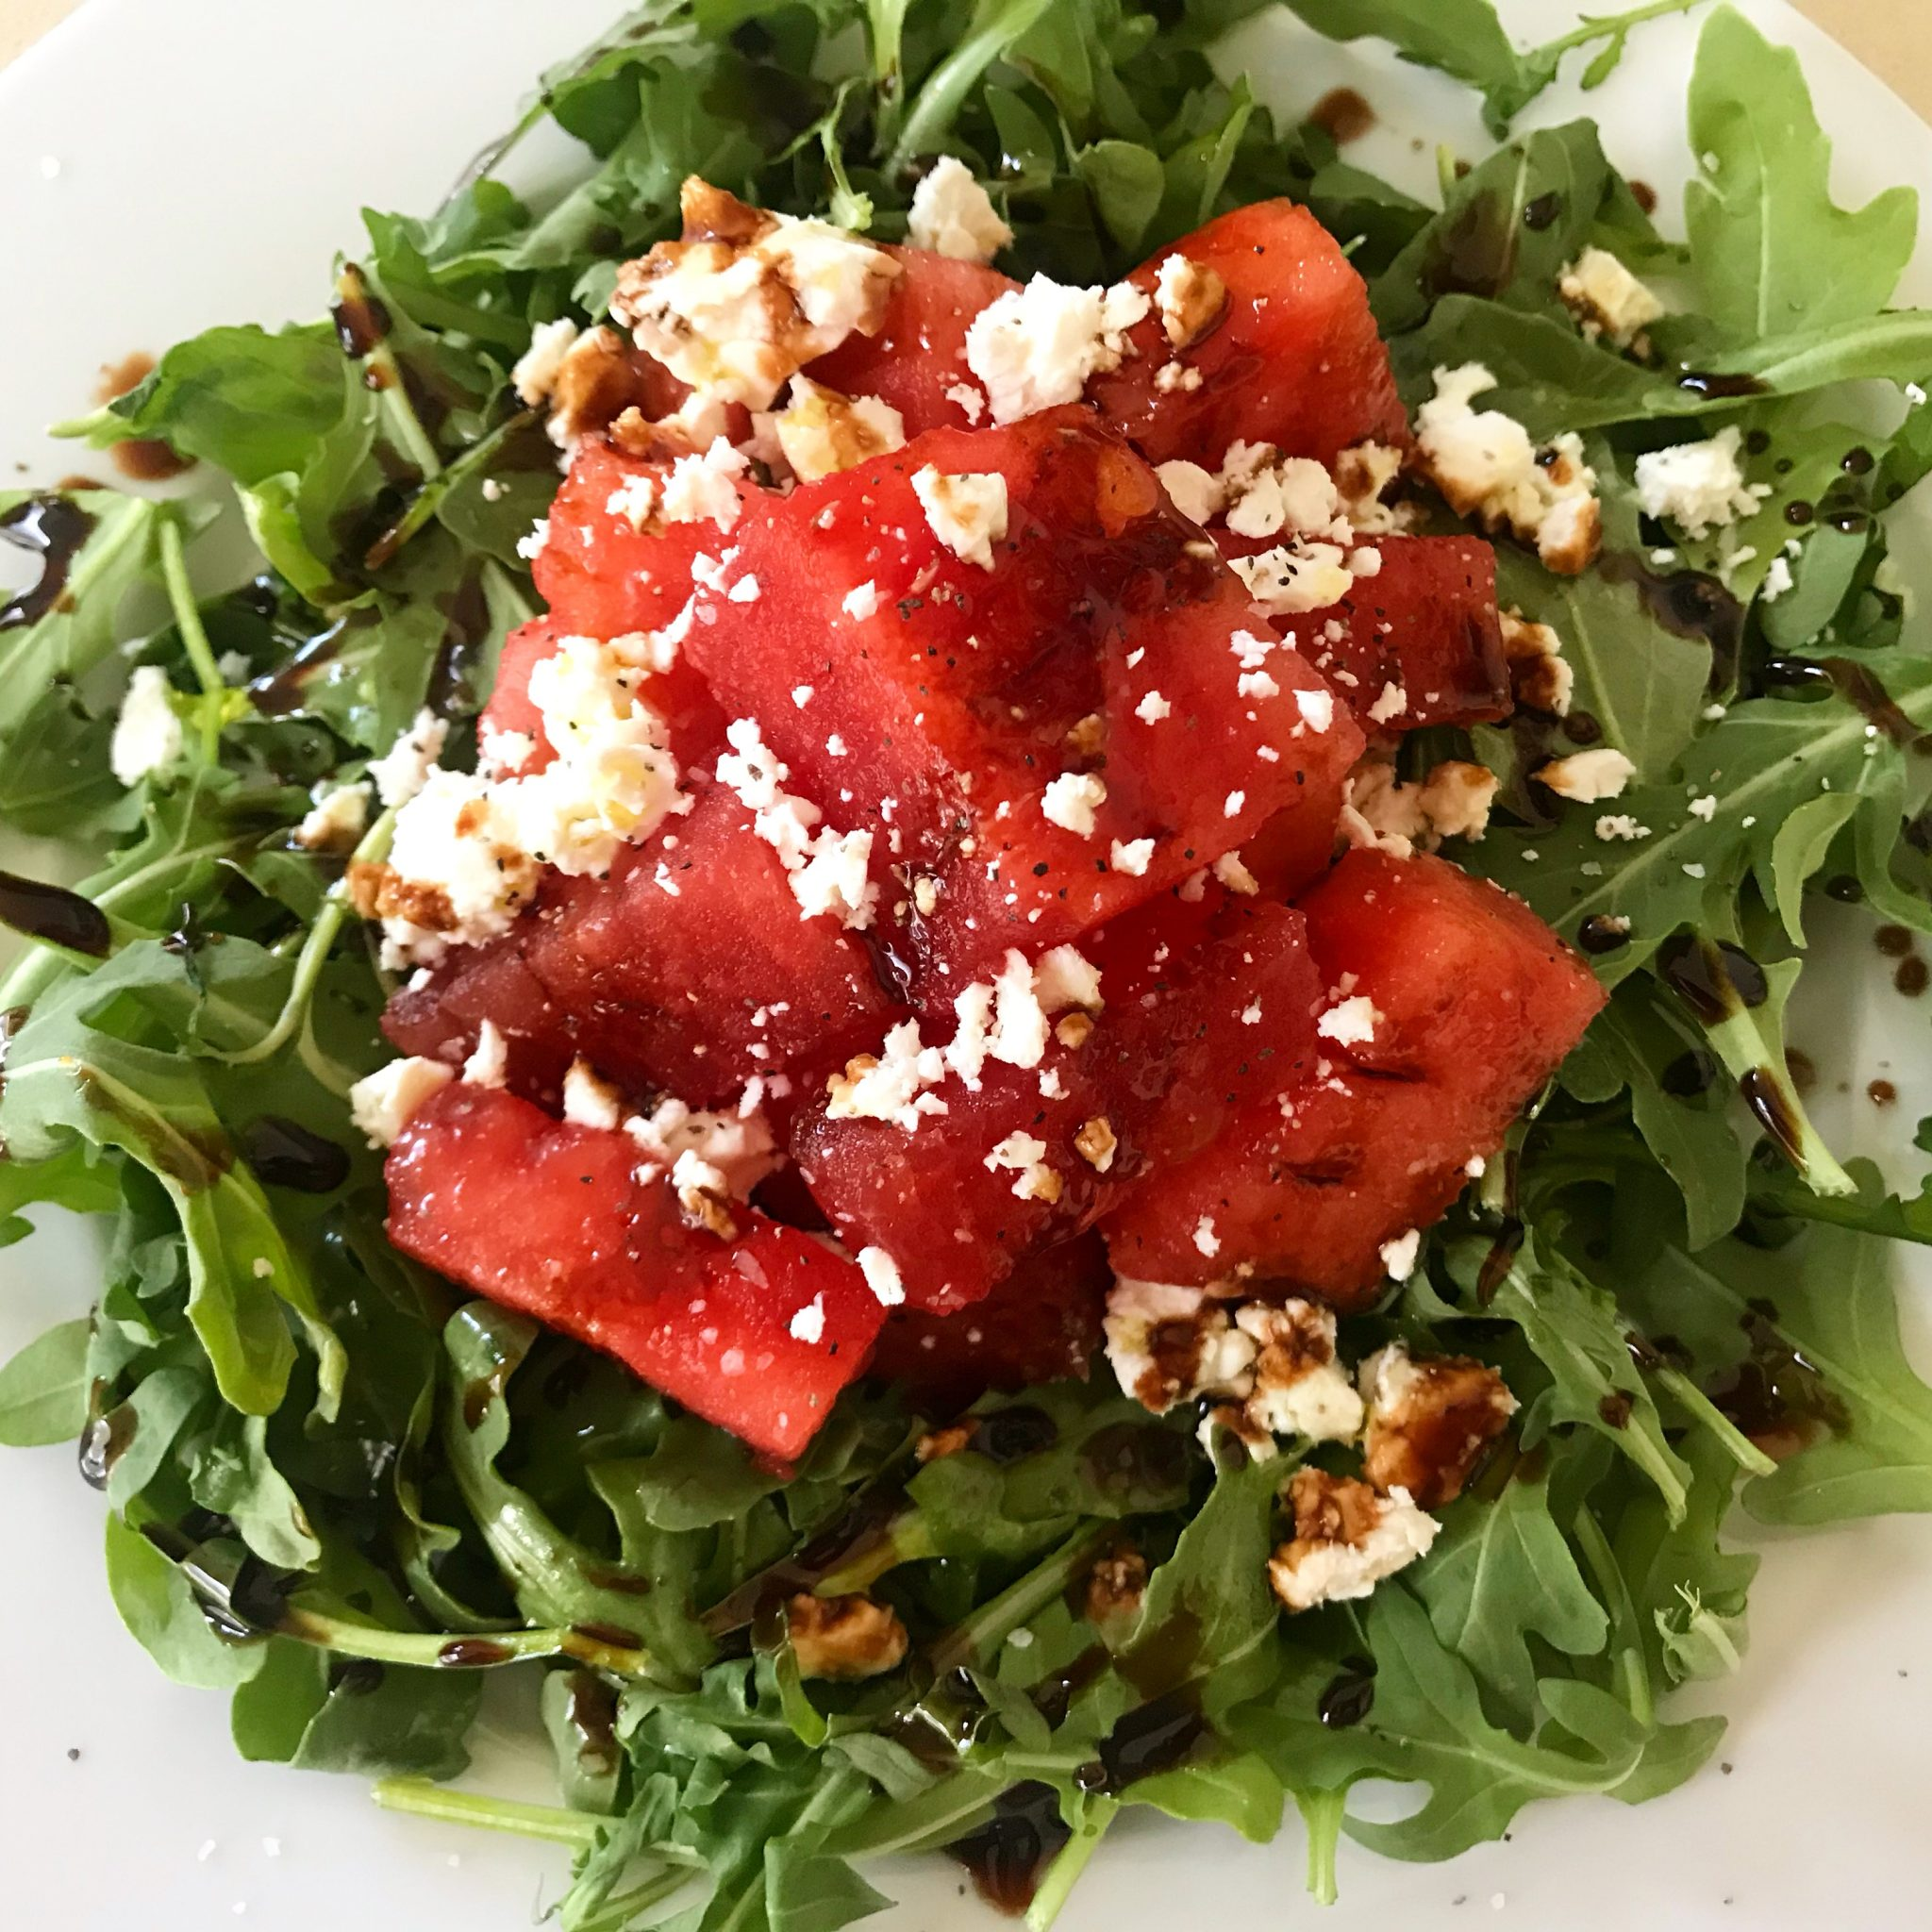 Arugula with Watermelon, Feta, and Pomegranate Molasses